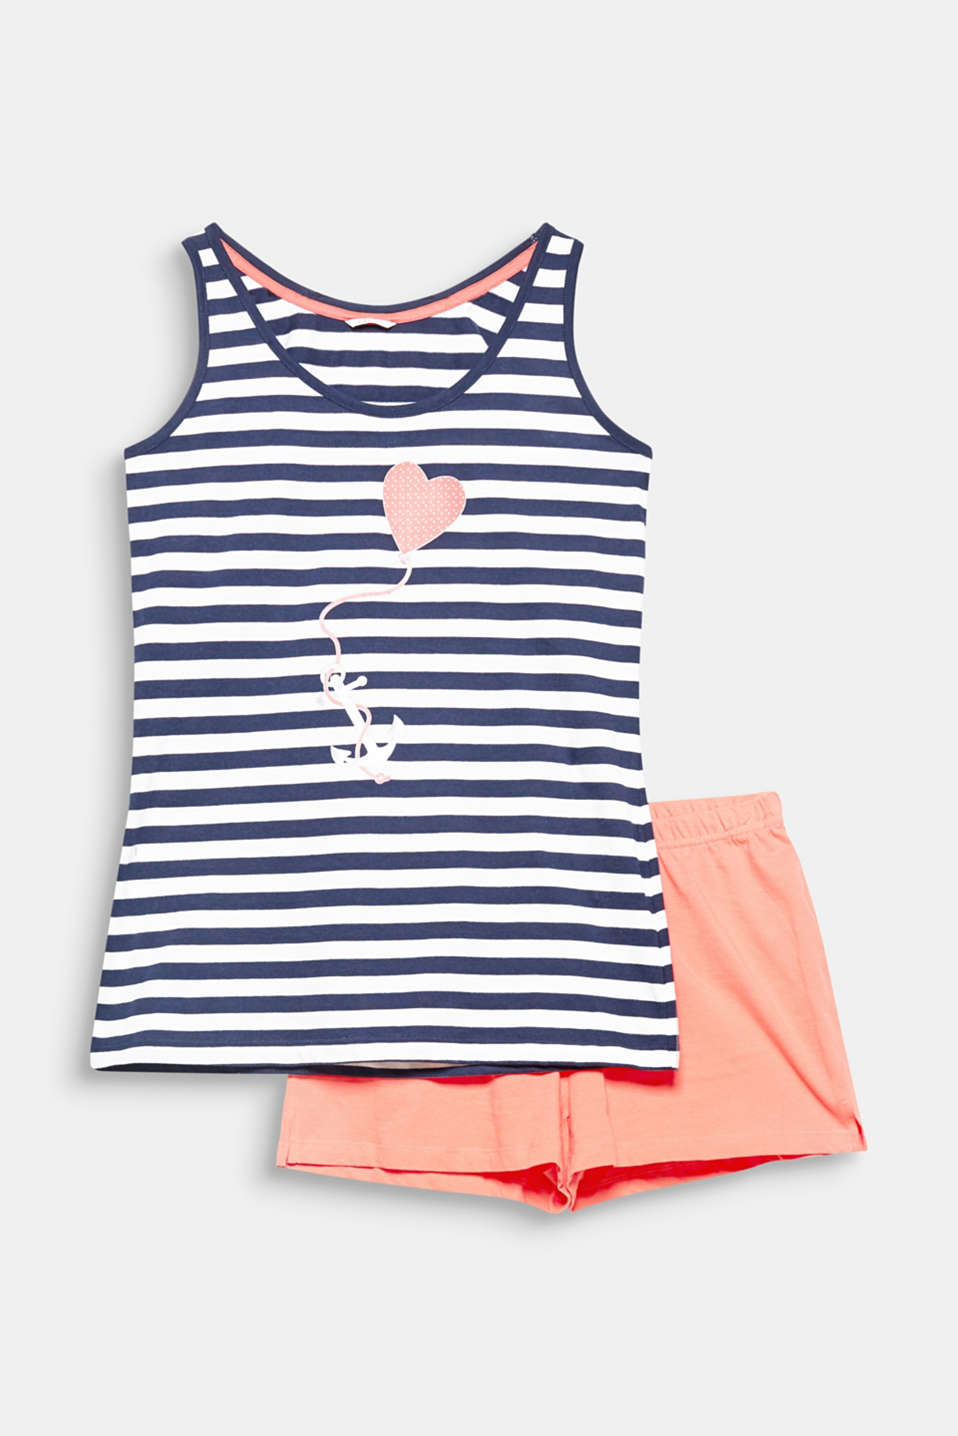 A refreshed nautical look: two-tone stripes and a slightly shiny anchor print make it happen!